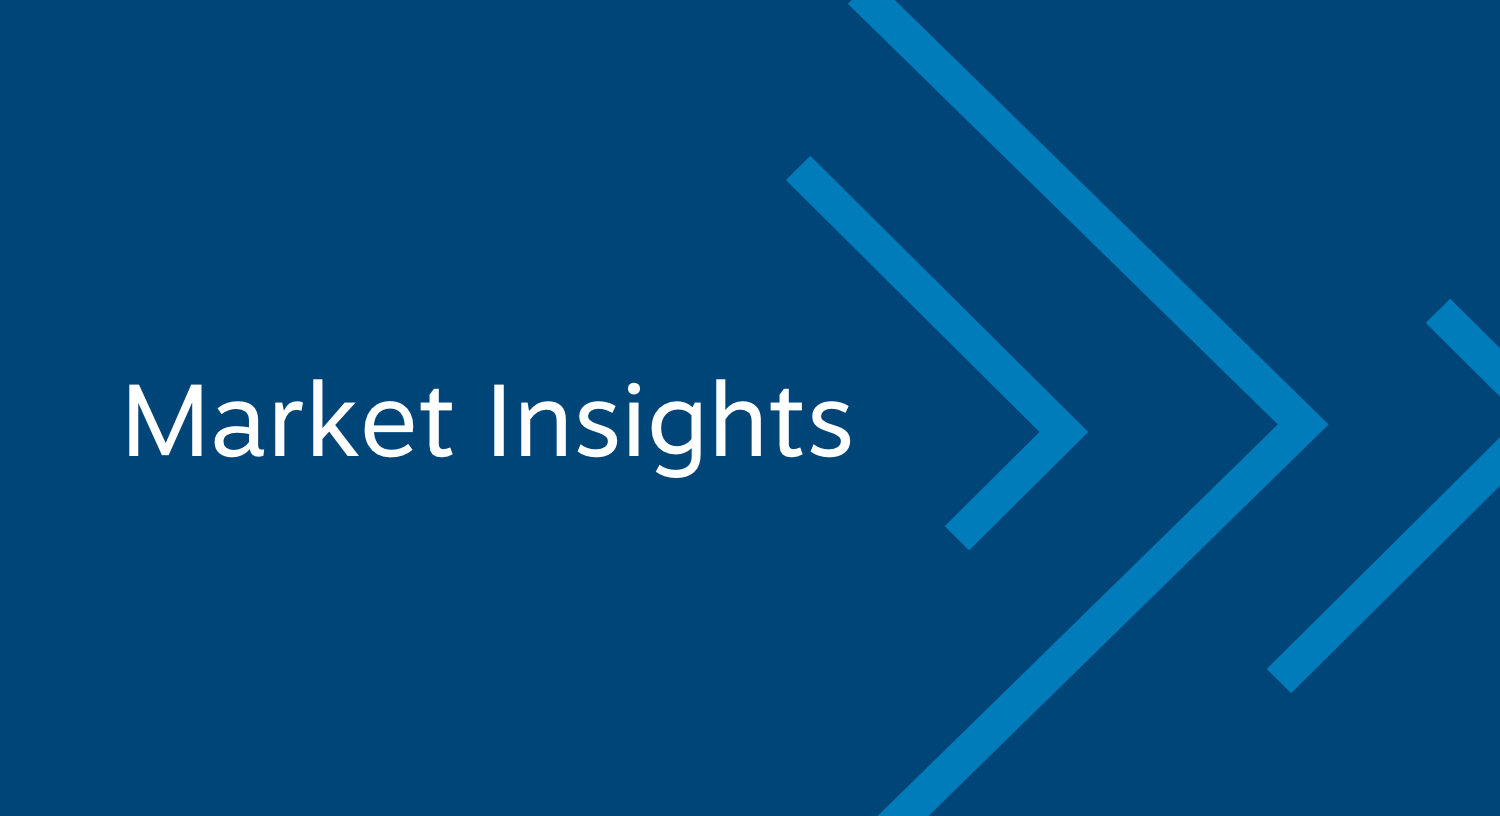 Market Insights - 11/27/17